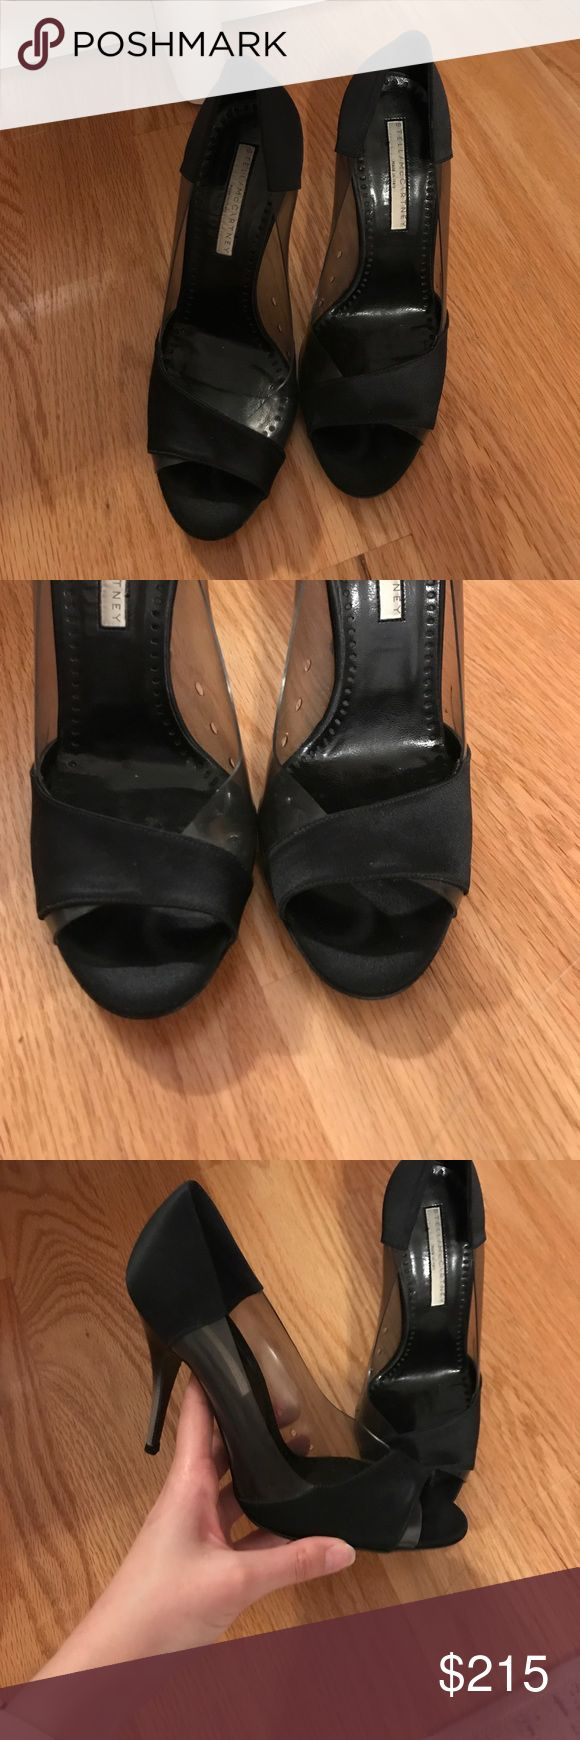 🎉SALE🎉 Stella McCartney black open toe heels Excellent condition, don't even look used! I've worn these once to a party, the soles do have very little wear on them, see photos. 100% authentic. I guarantee authenticity as these were purchased by me. I no longer have the receipt or box. 🎉TODAY ONLY SALE! ALL OFFERS WILL BE REJECTED! Bundle and save!! 🎉 Stella McCartney Shoes Heels